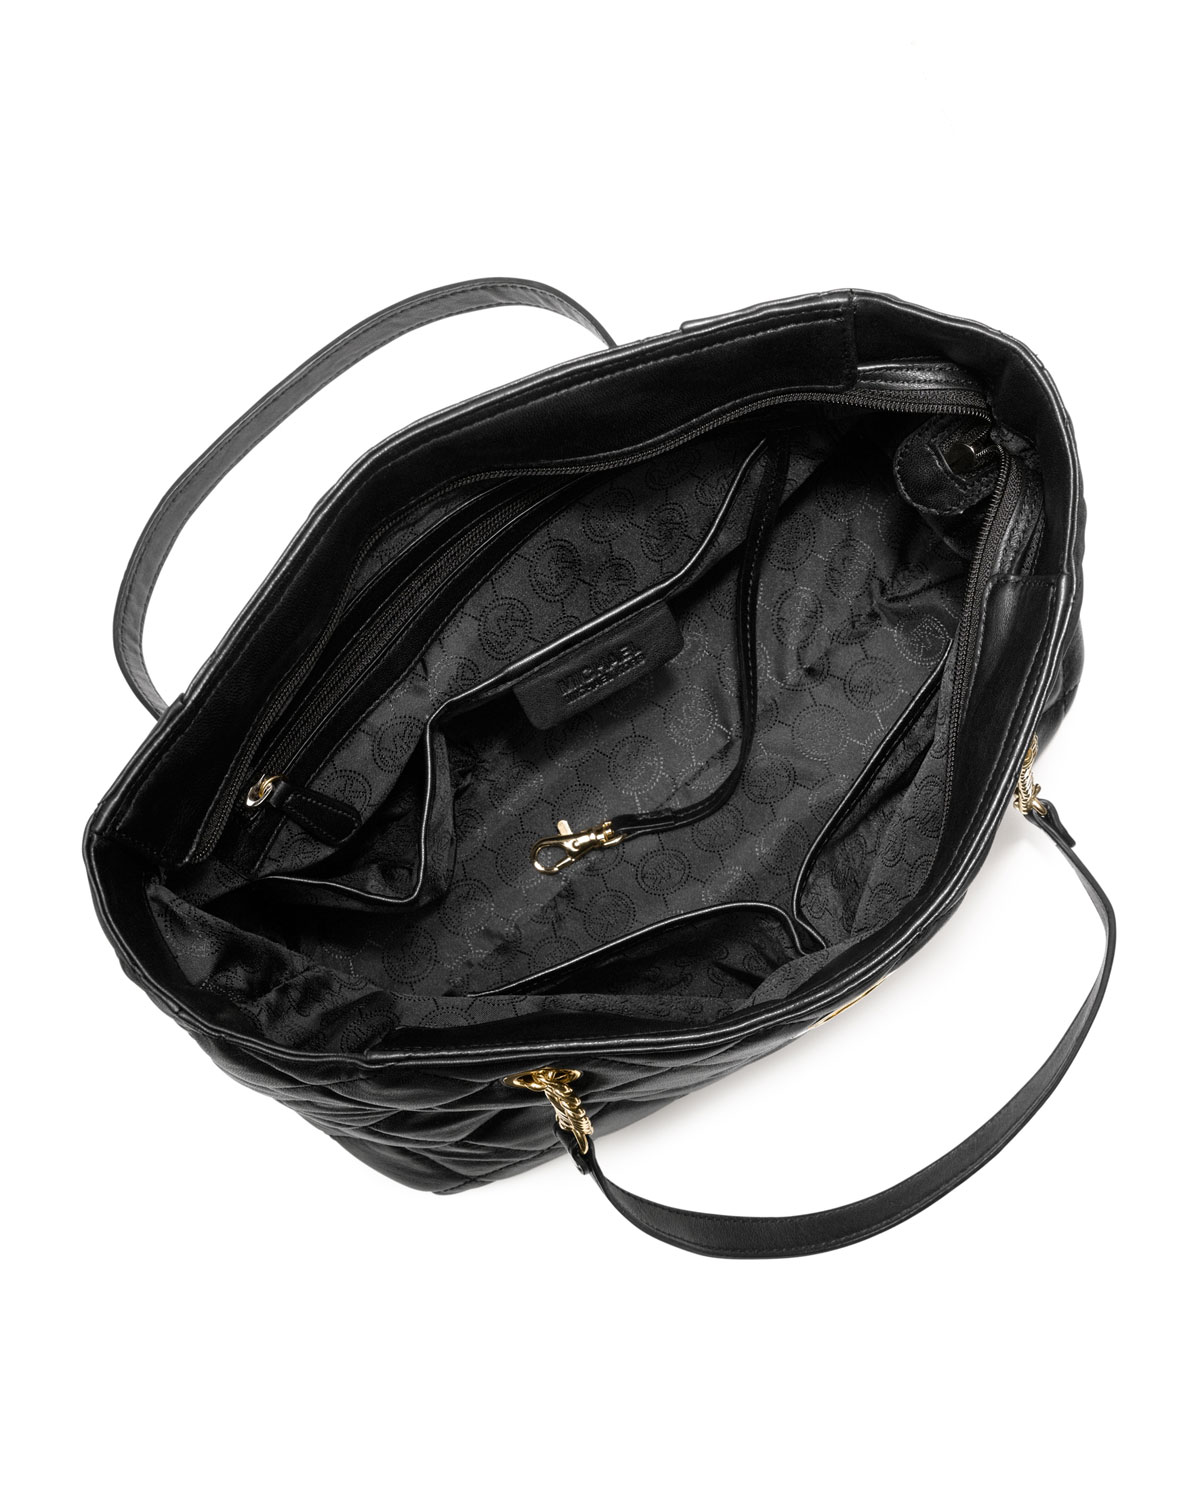 Lyst - Michael kors Large Fulton Quilted Tote in Black : michael kors fulton quilted tote - Adamdwight.com